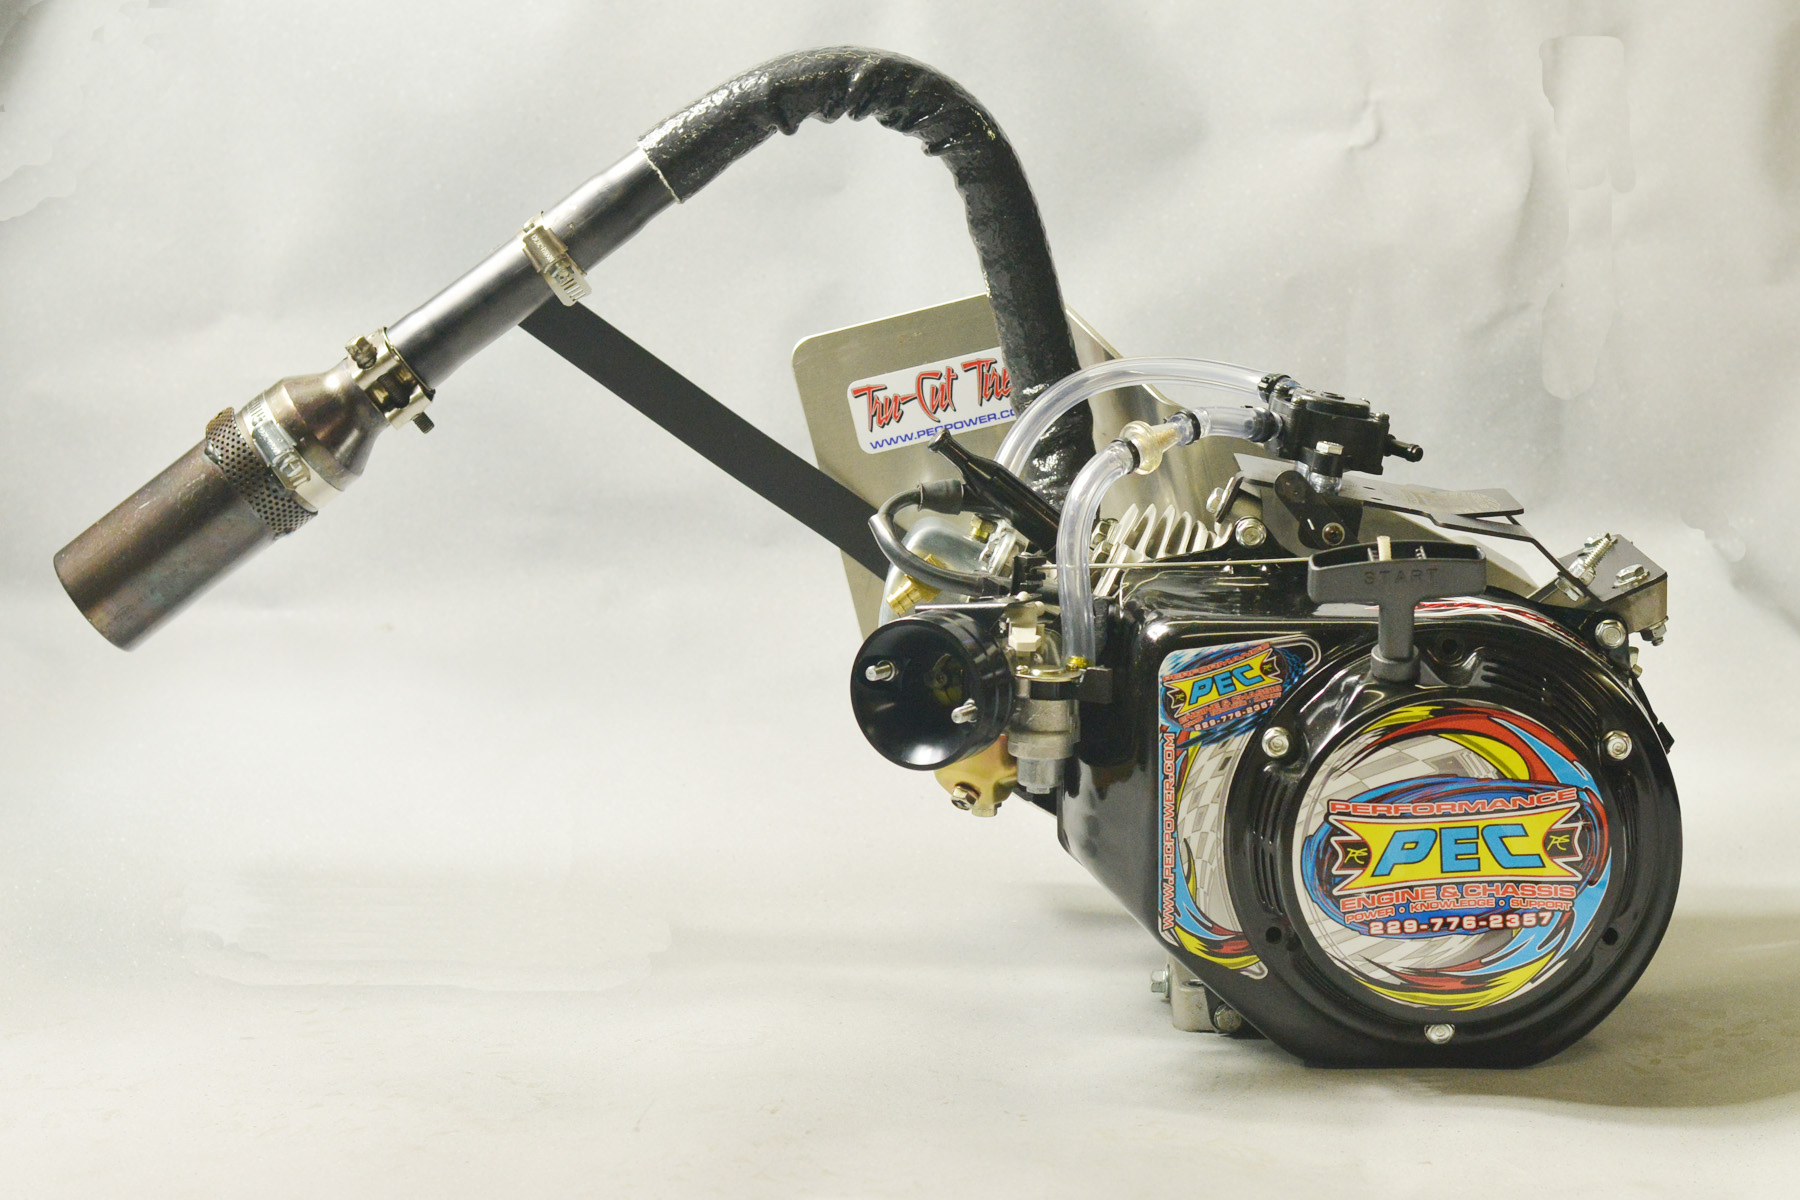 Pec power performance engine and chassis get your box stock today sciox Choice Image